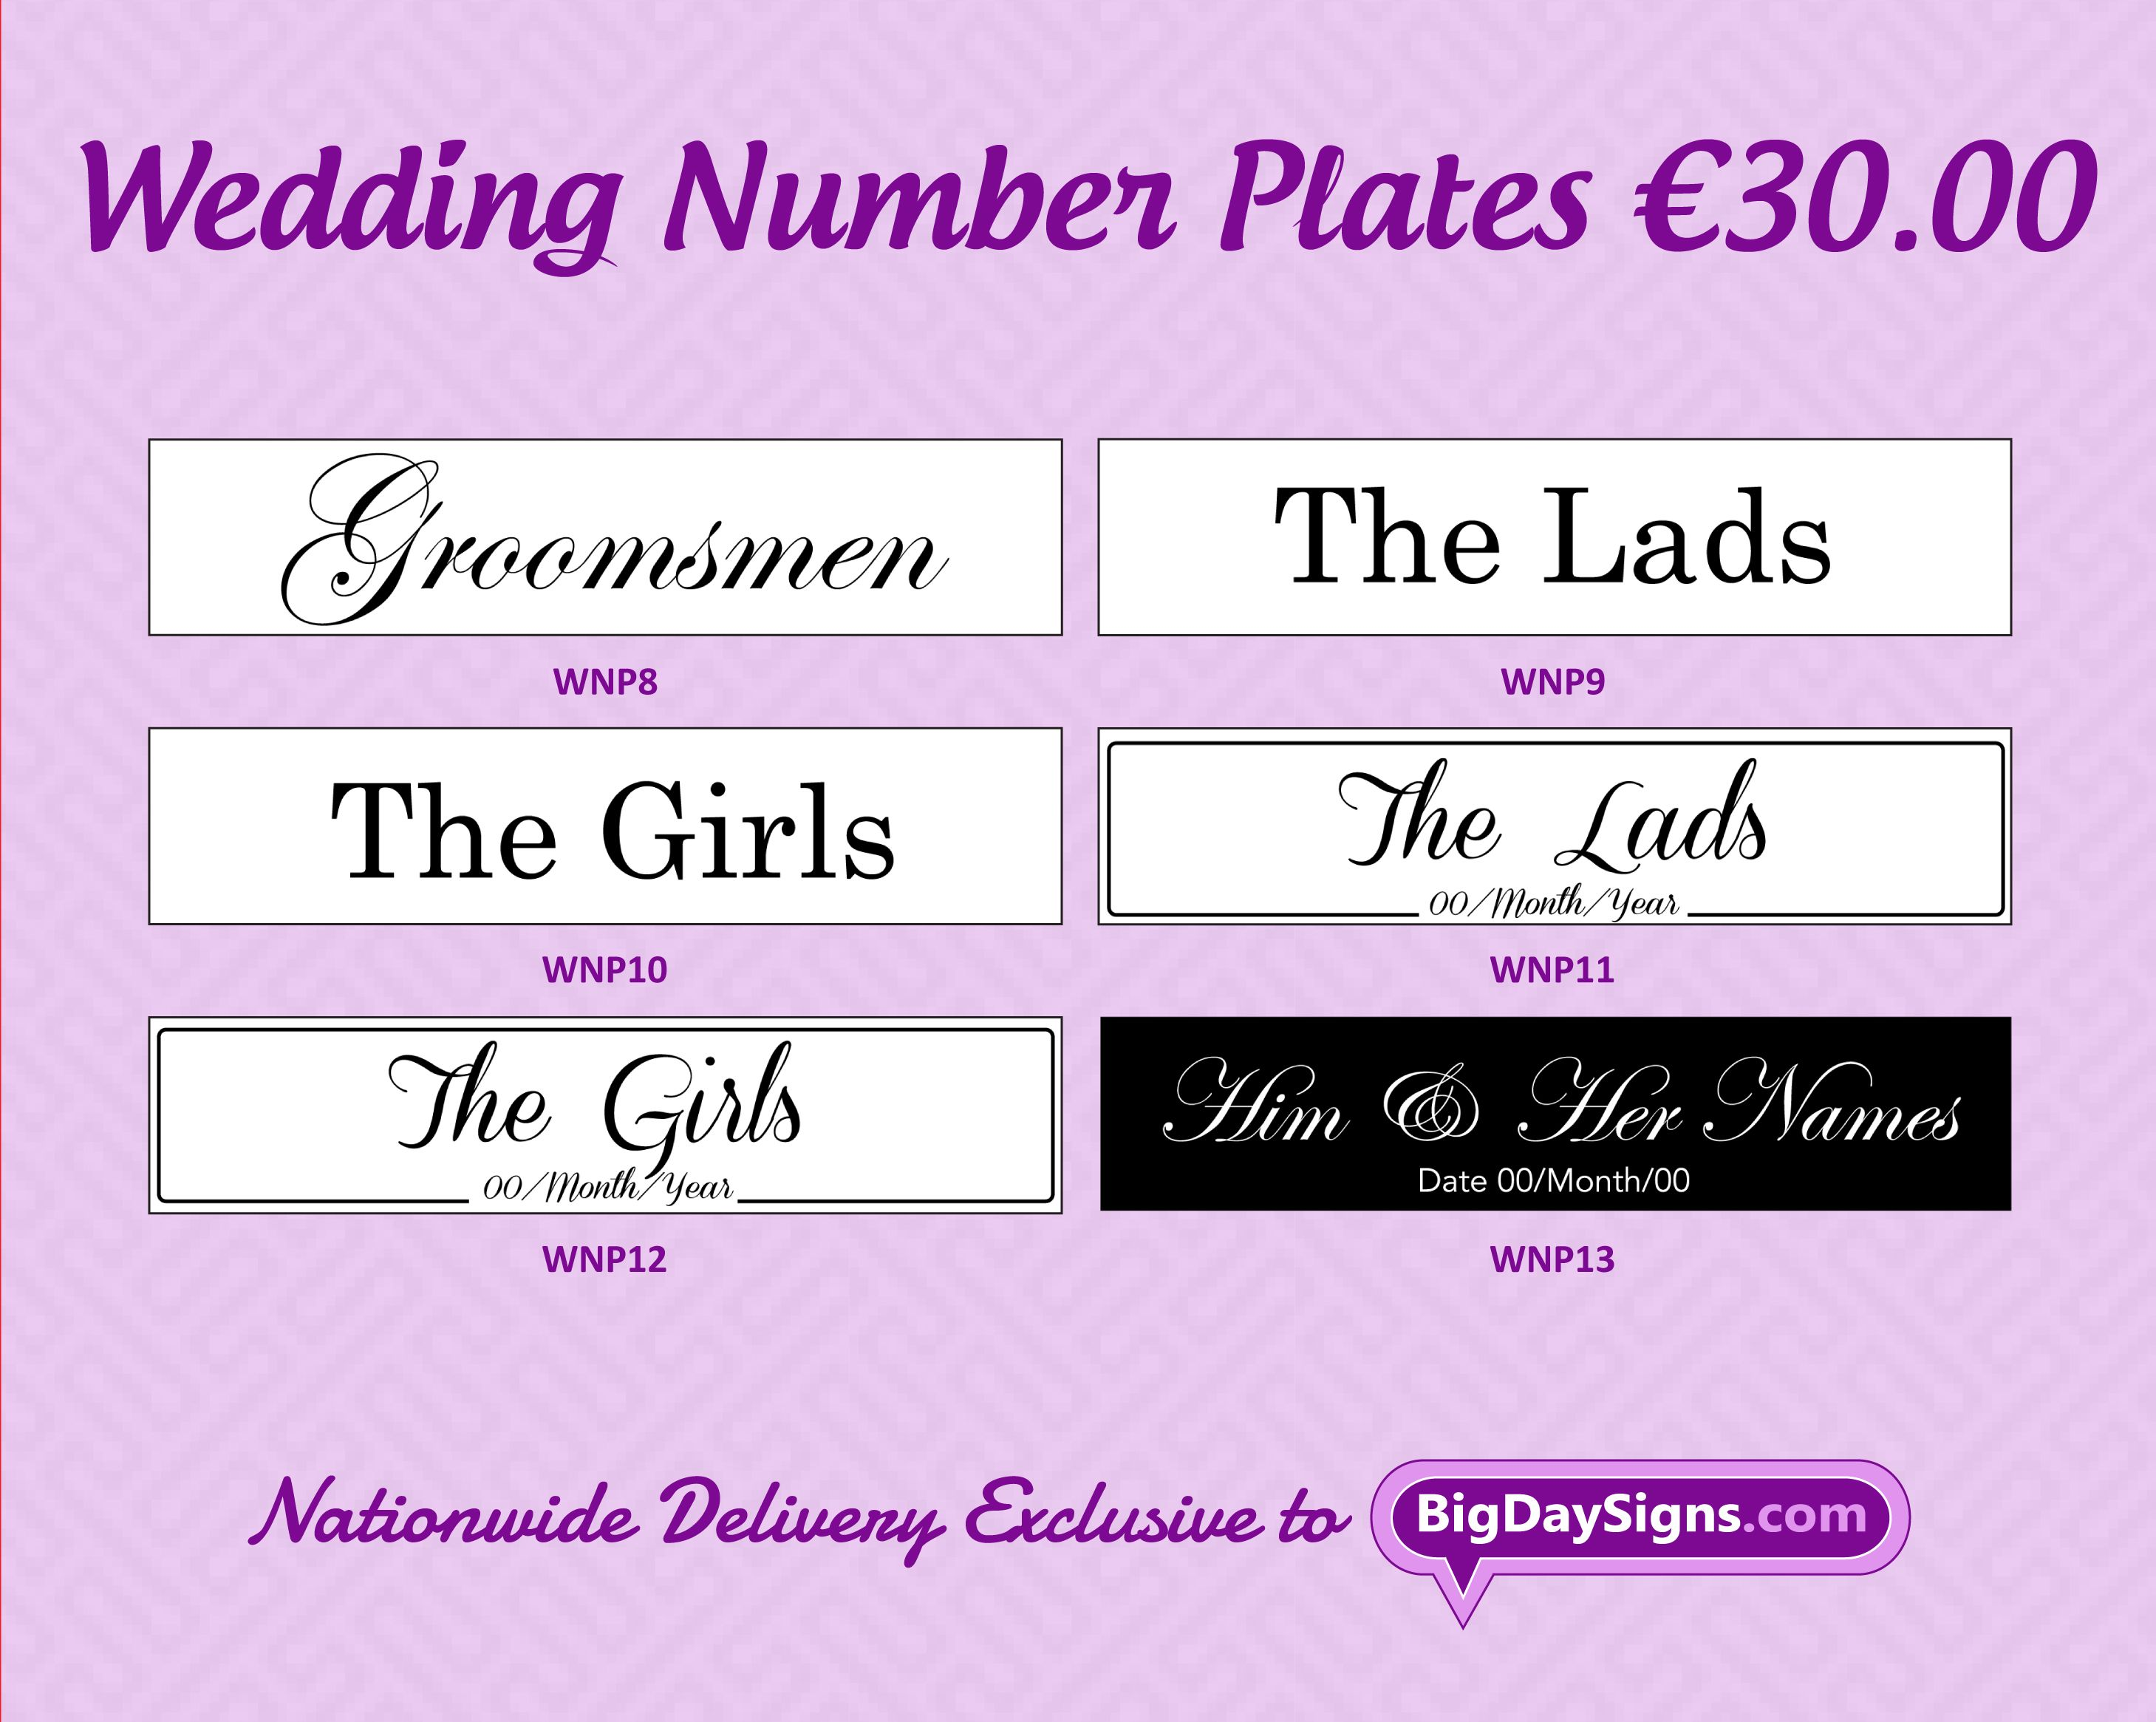 Wedding Number Plates 20.5  X 4.4  (Set of 2 plates) - u20ac30.00 Water proof rigid acrylic plastic backed with a vinyl the same as standard car plates.  sc 1 st  Pinterest & Wedding Number Plates 20.5